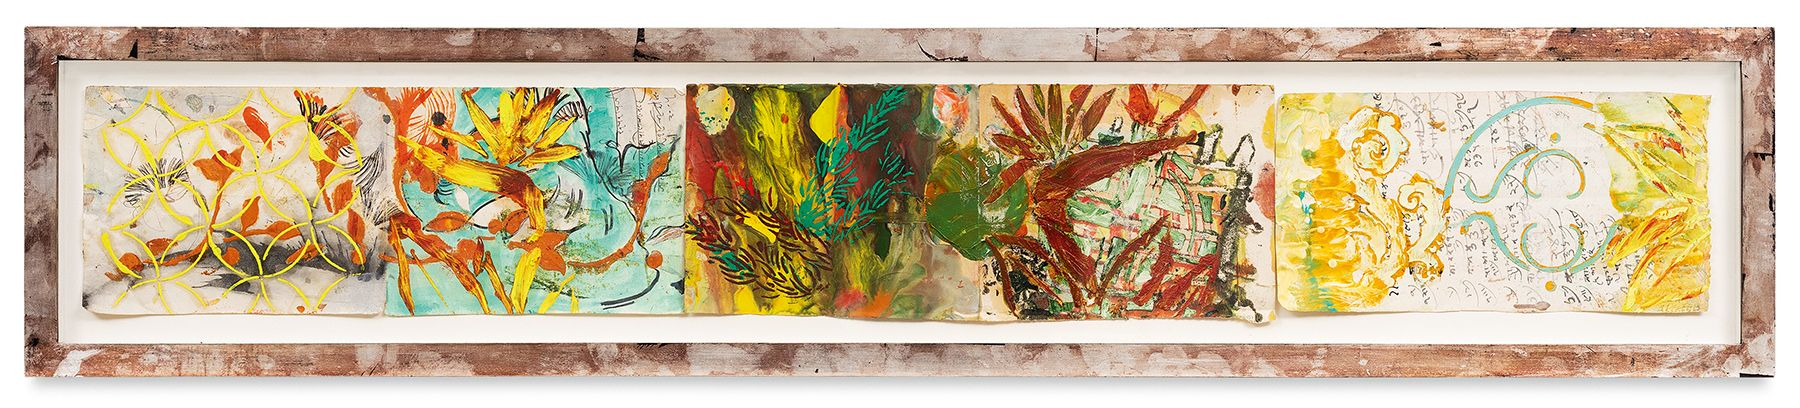 Ragamala 11, 2013, Oil stick, encaustic, vintage Indian paper, in artist's frame, 10 x 51 inches, 25.4 x 129.5 cm, MMG#30619